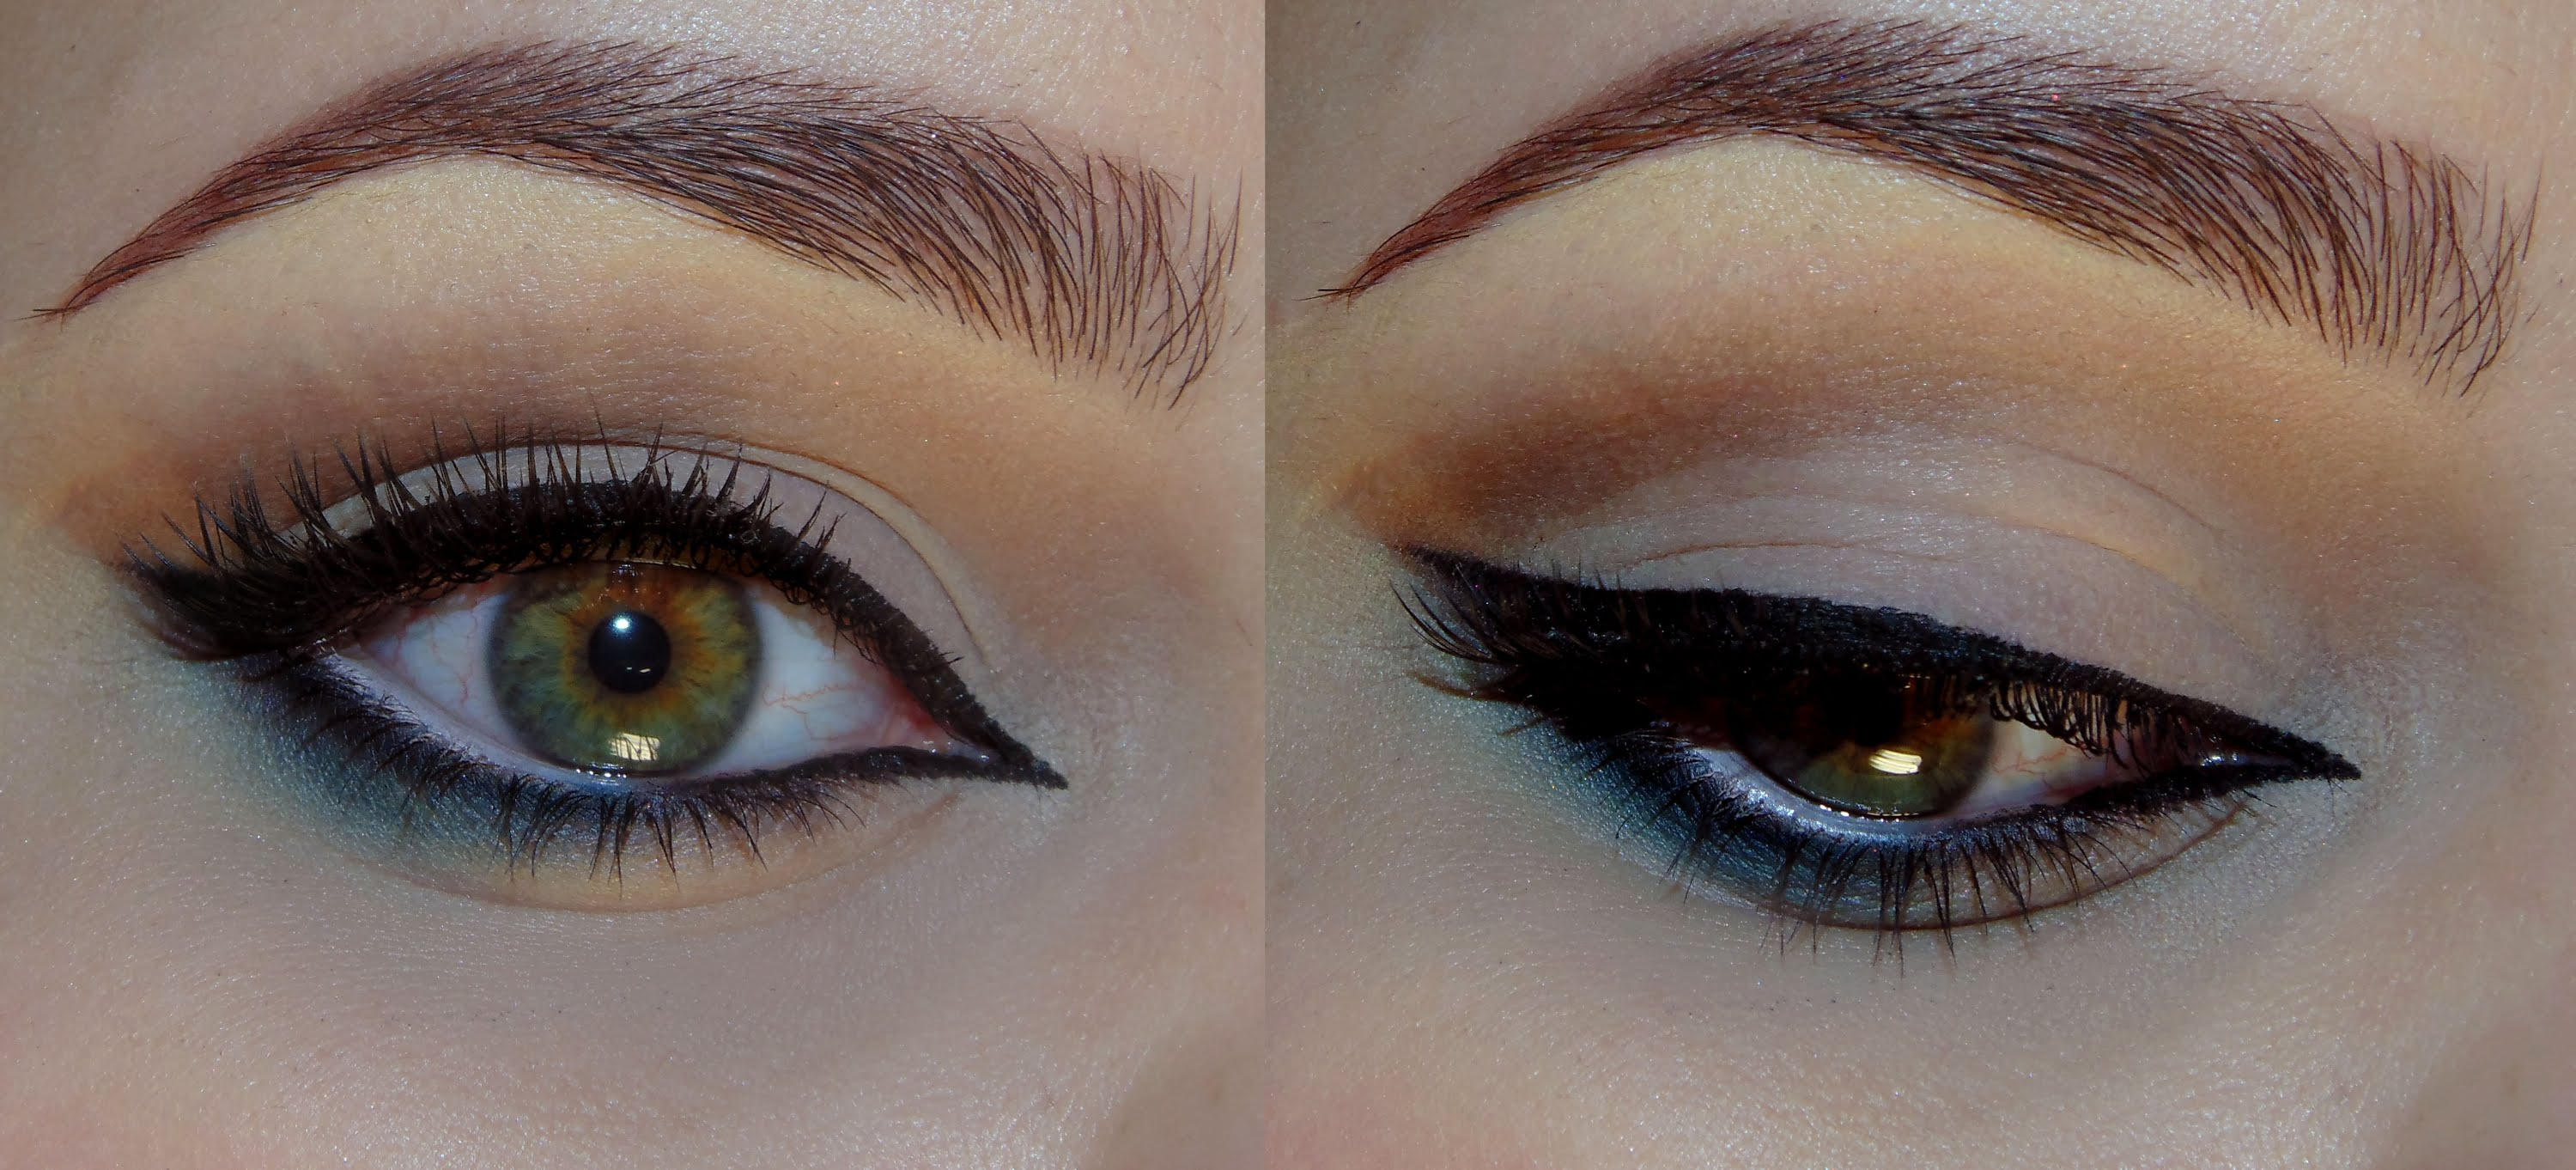 Revamped cat eye - 10 Eyeliner Styles for Beginners - Step By Step Tutorial with Images